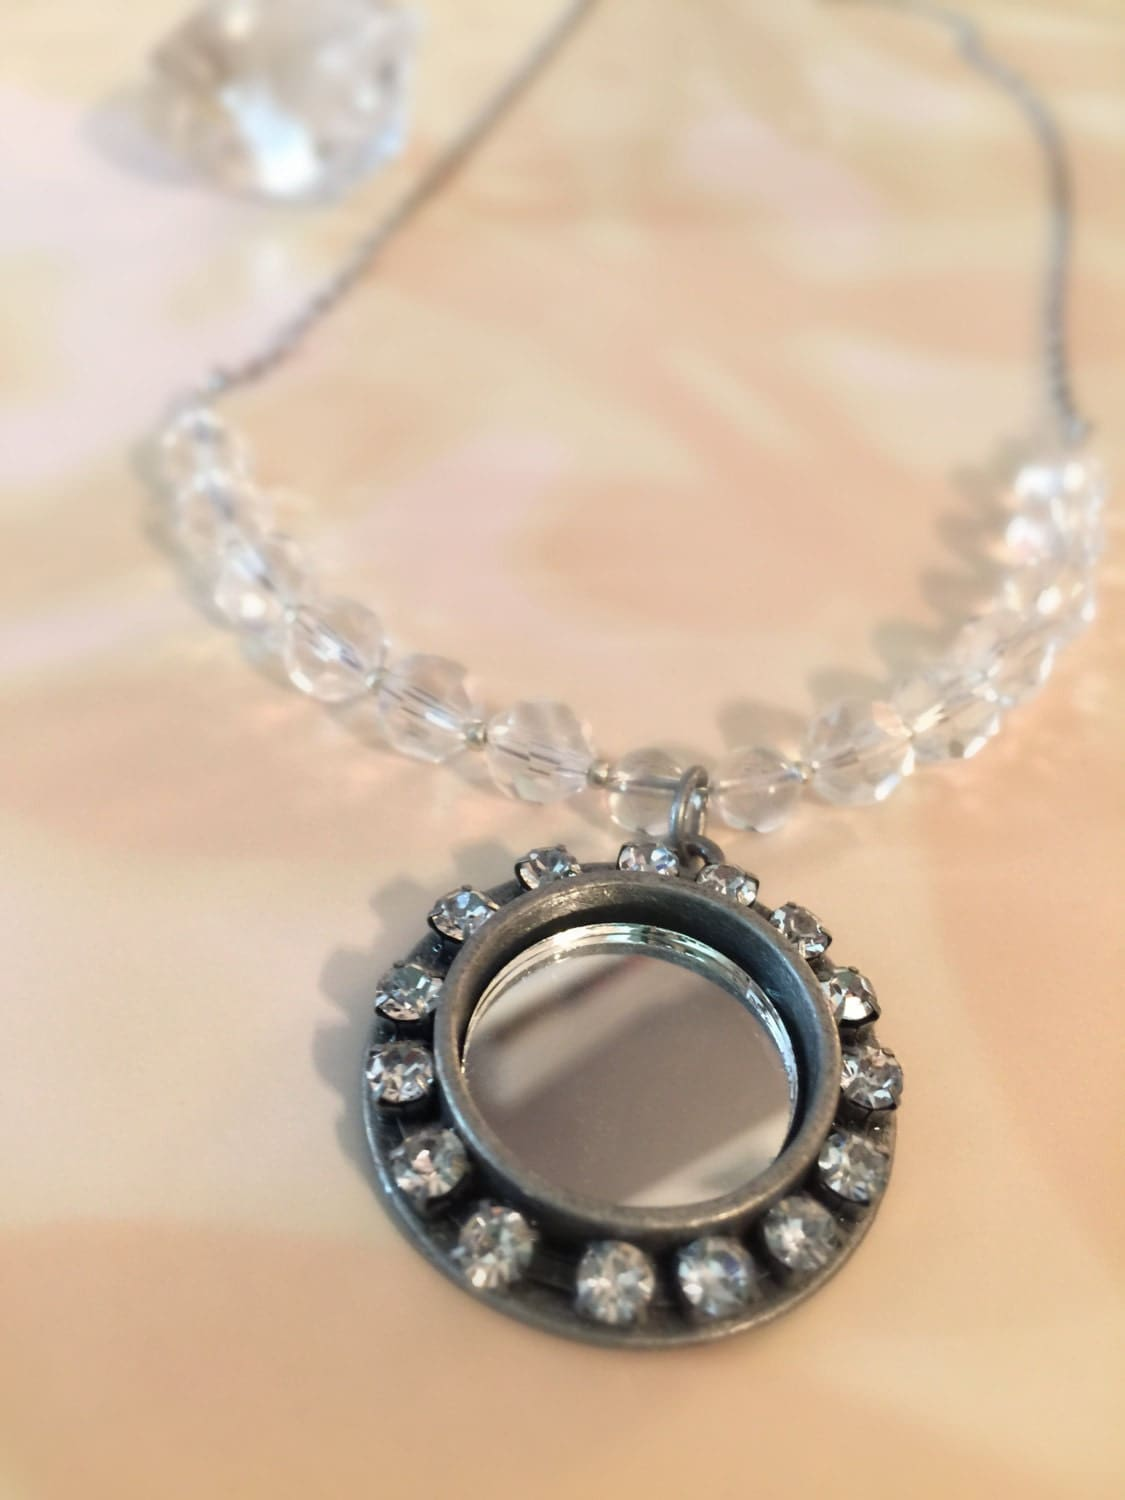 Mirror Protection Necklace With Quartz And Glass Crystal